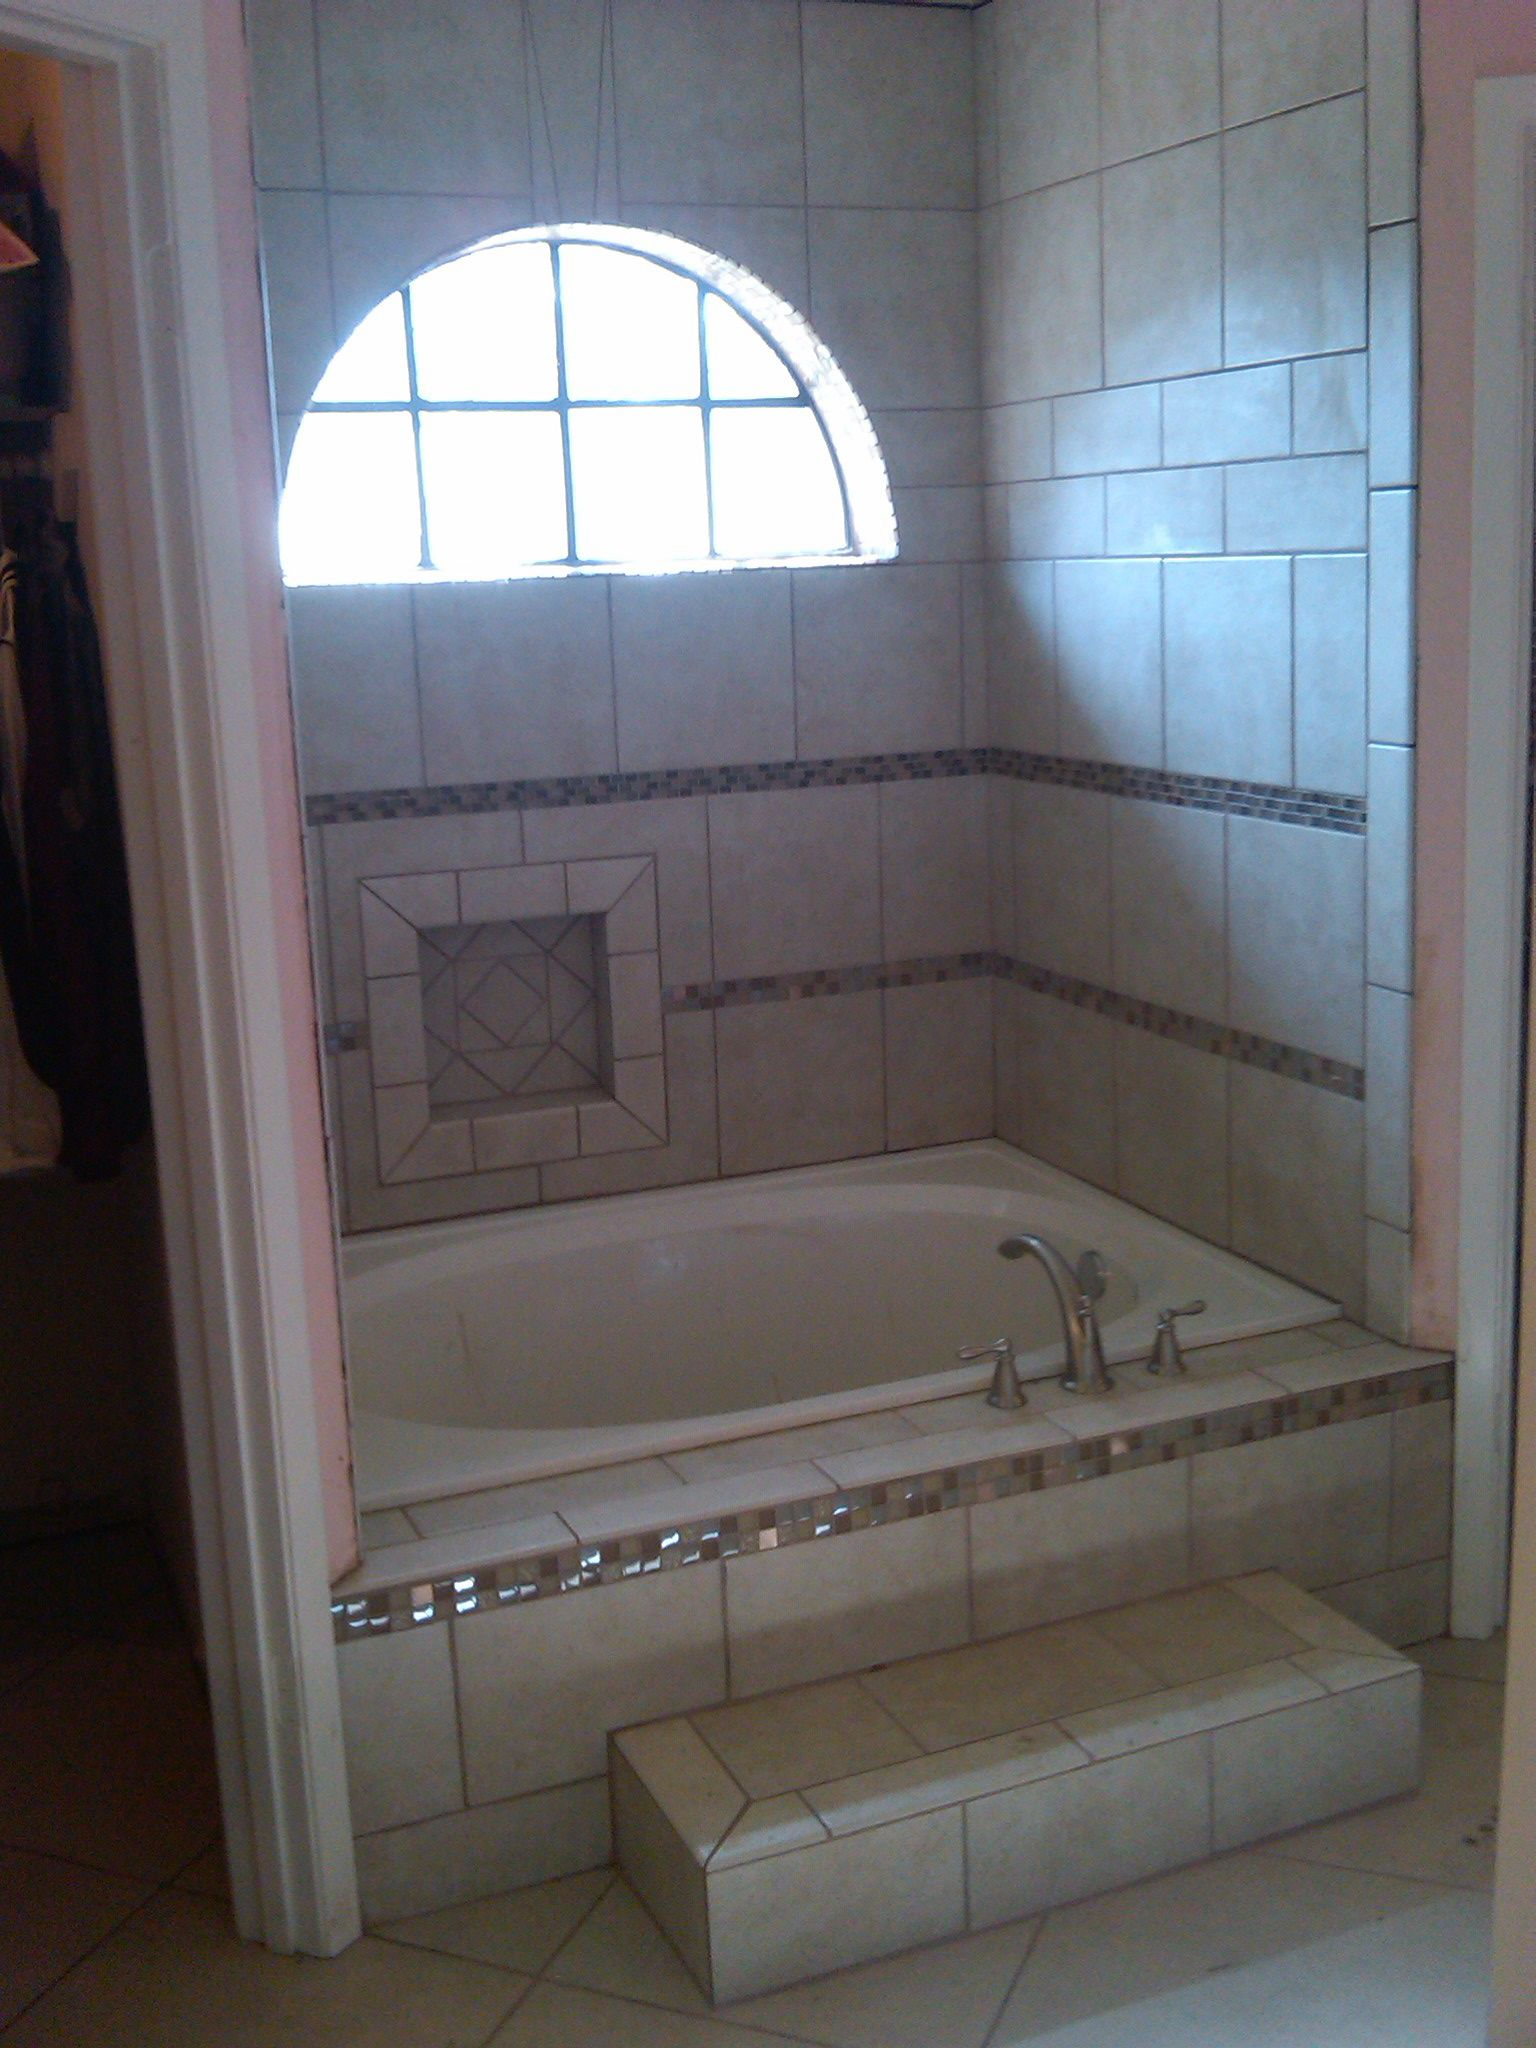 Tile garden tub my remodeling and construction projects for Garden tub bathroom ideas